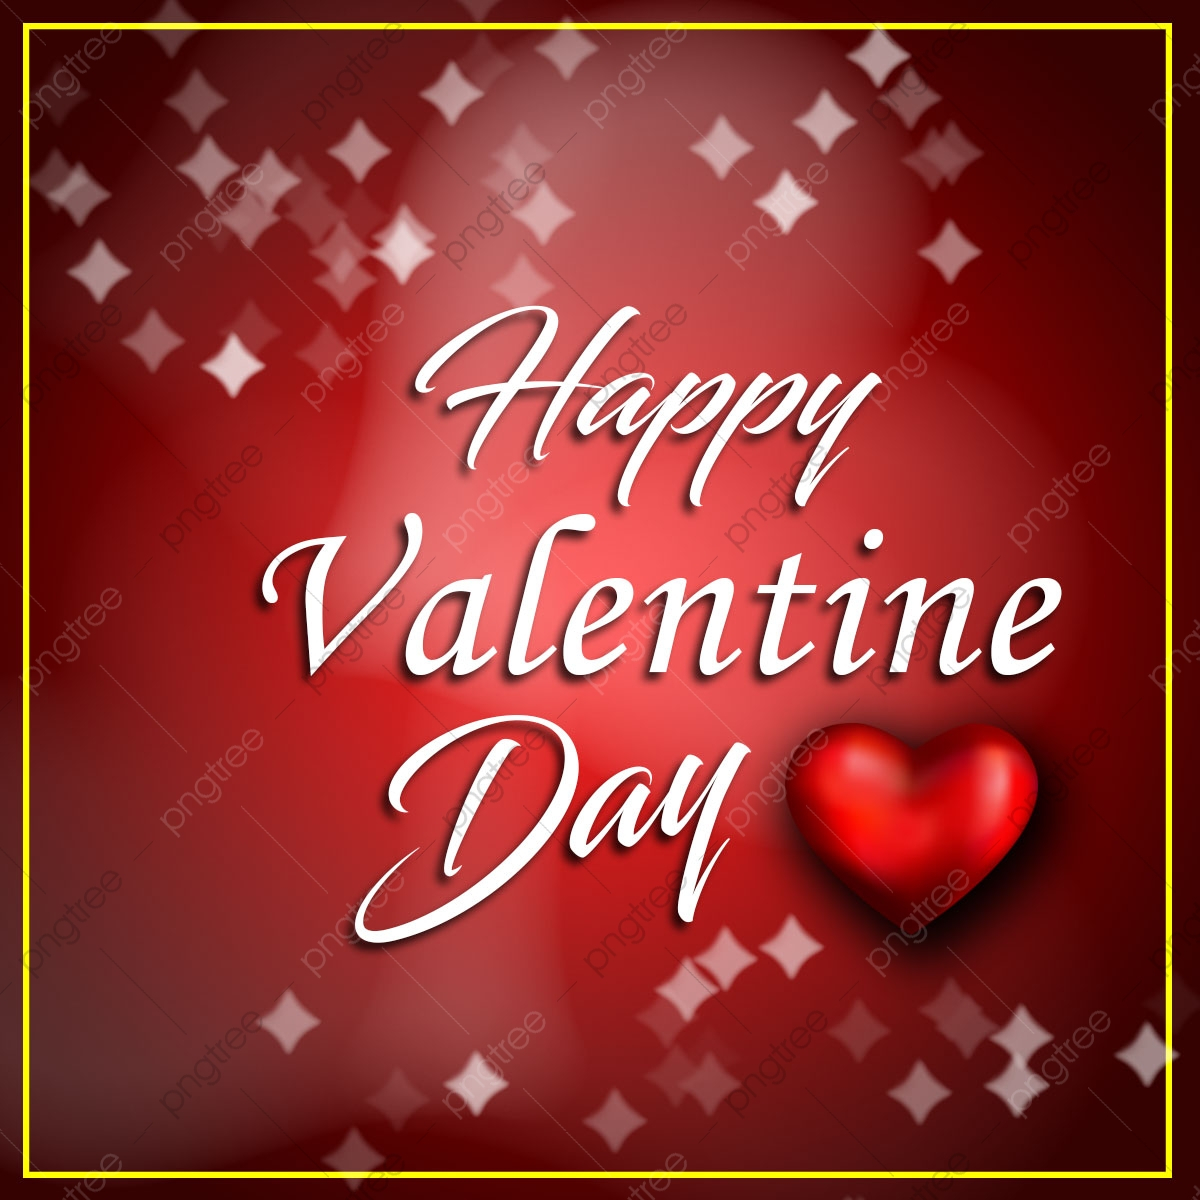 pngtree happy valentine day images with heart and bokeh background png image